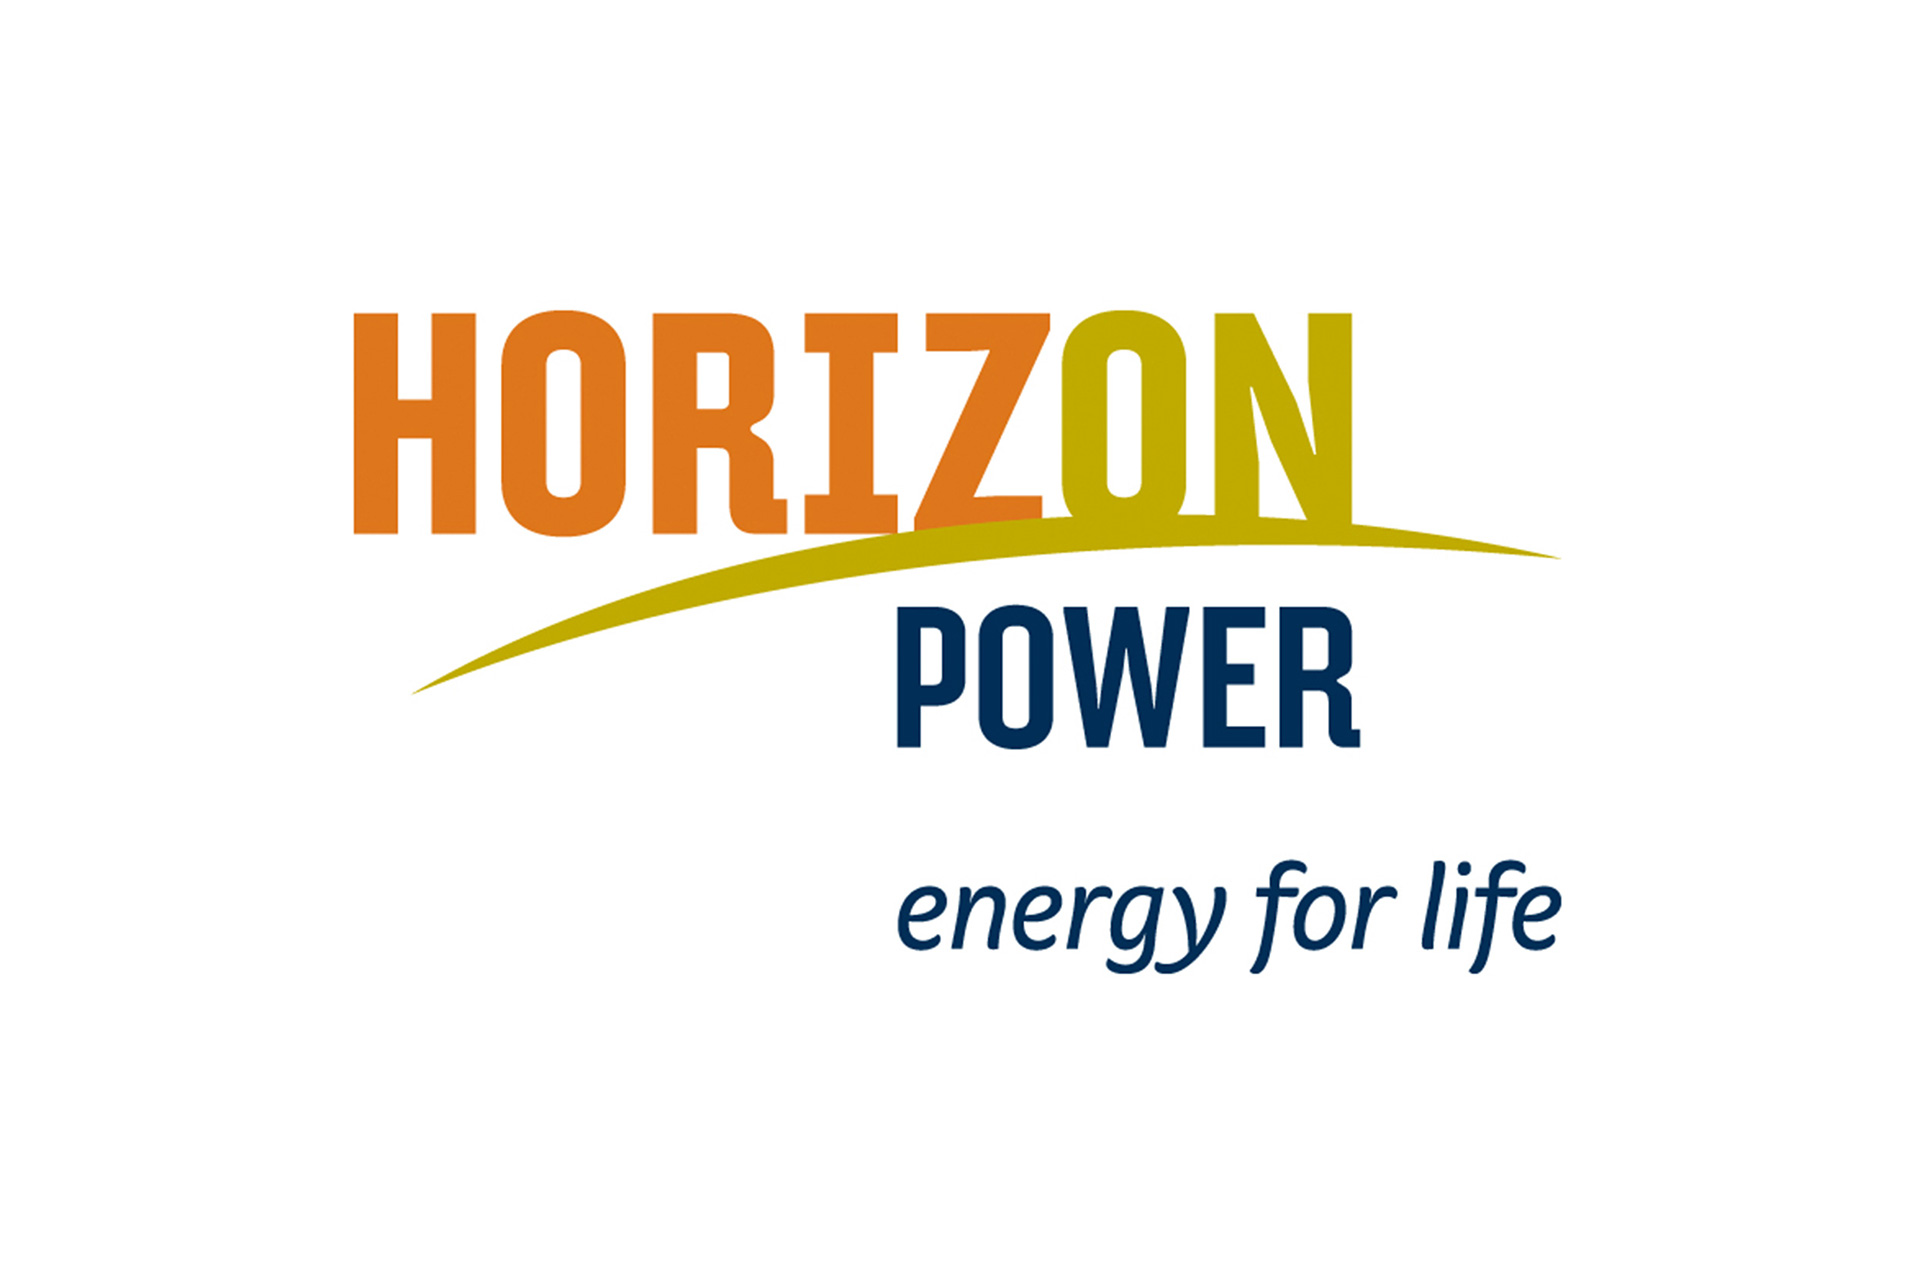 the-energy-charter-welcomes-horizon-power-2